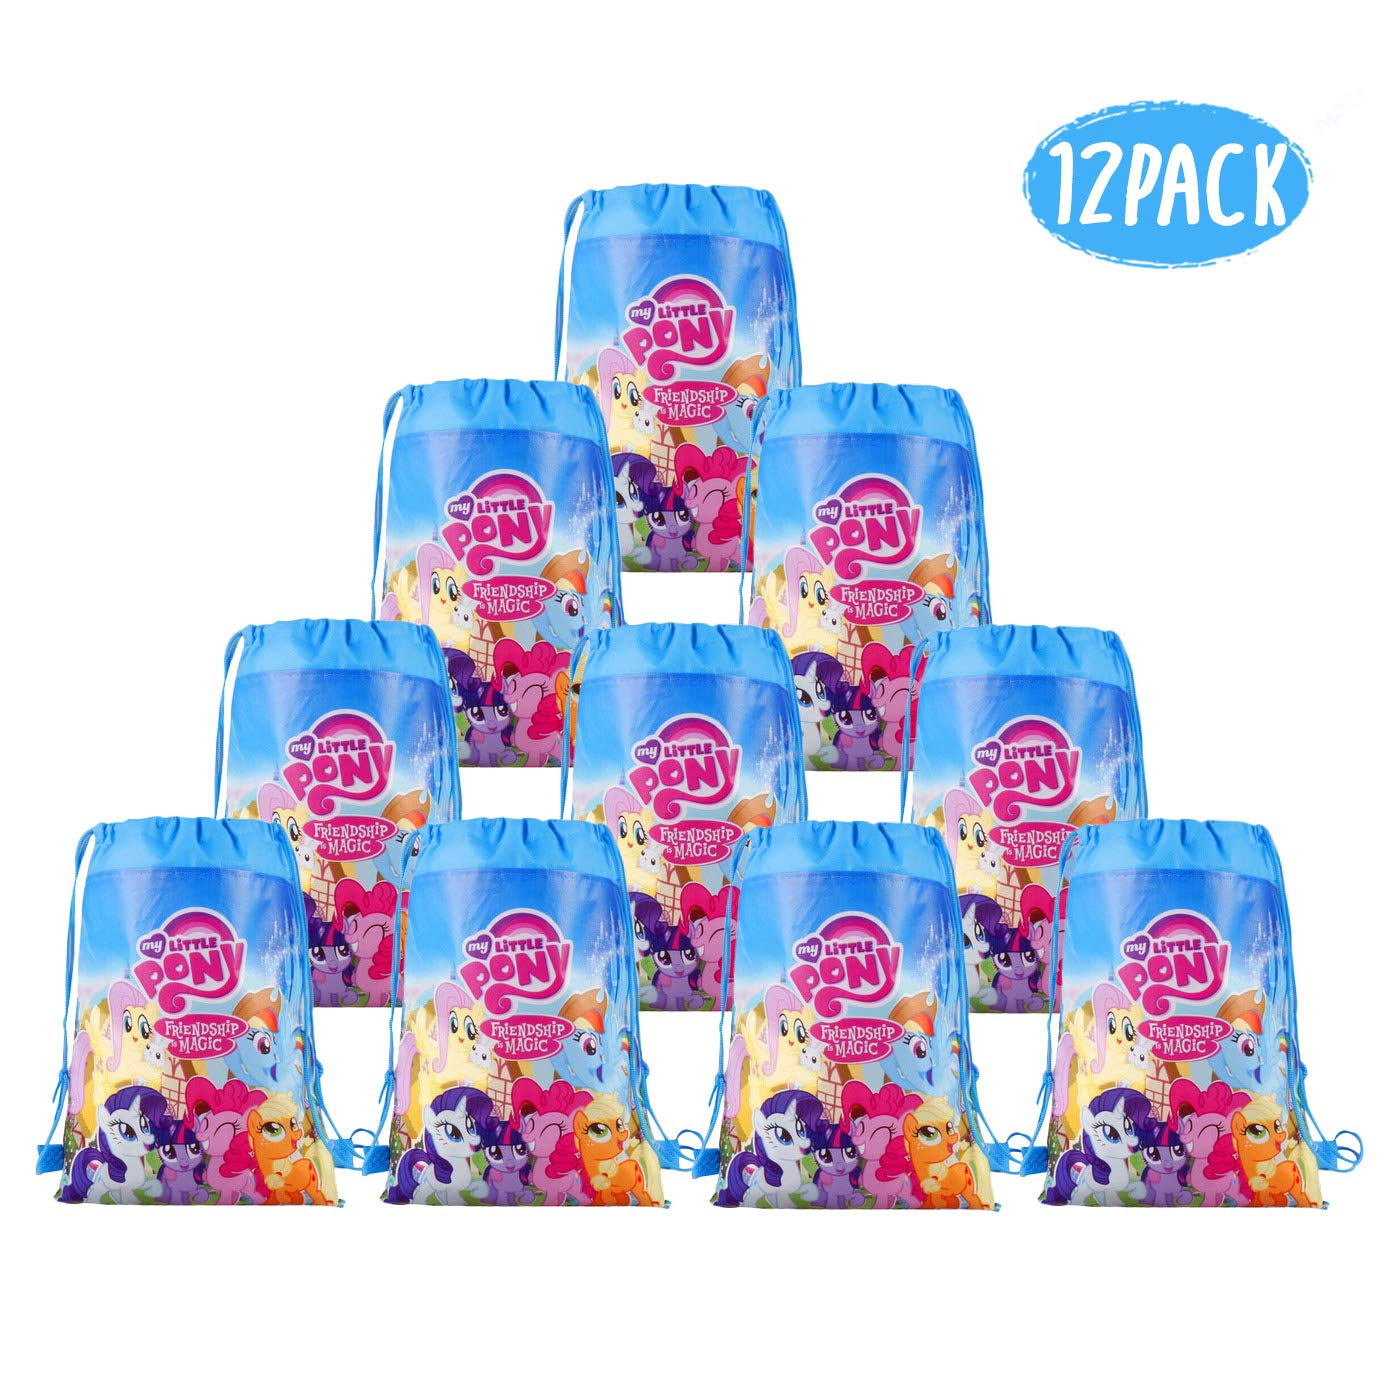 LUCK COLLECTION My Little Pony Bags Party Treat Drawstring Bags for Kids Birthday...